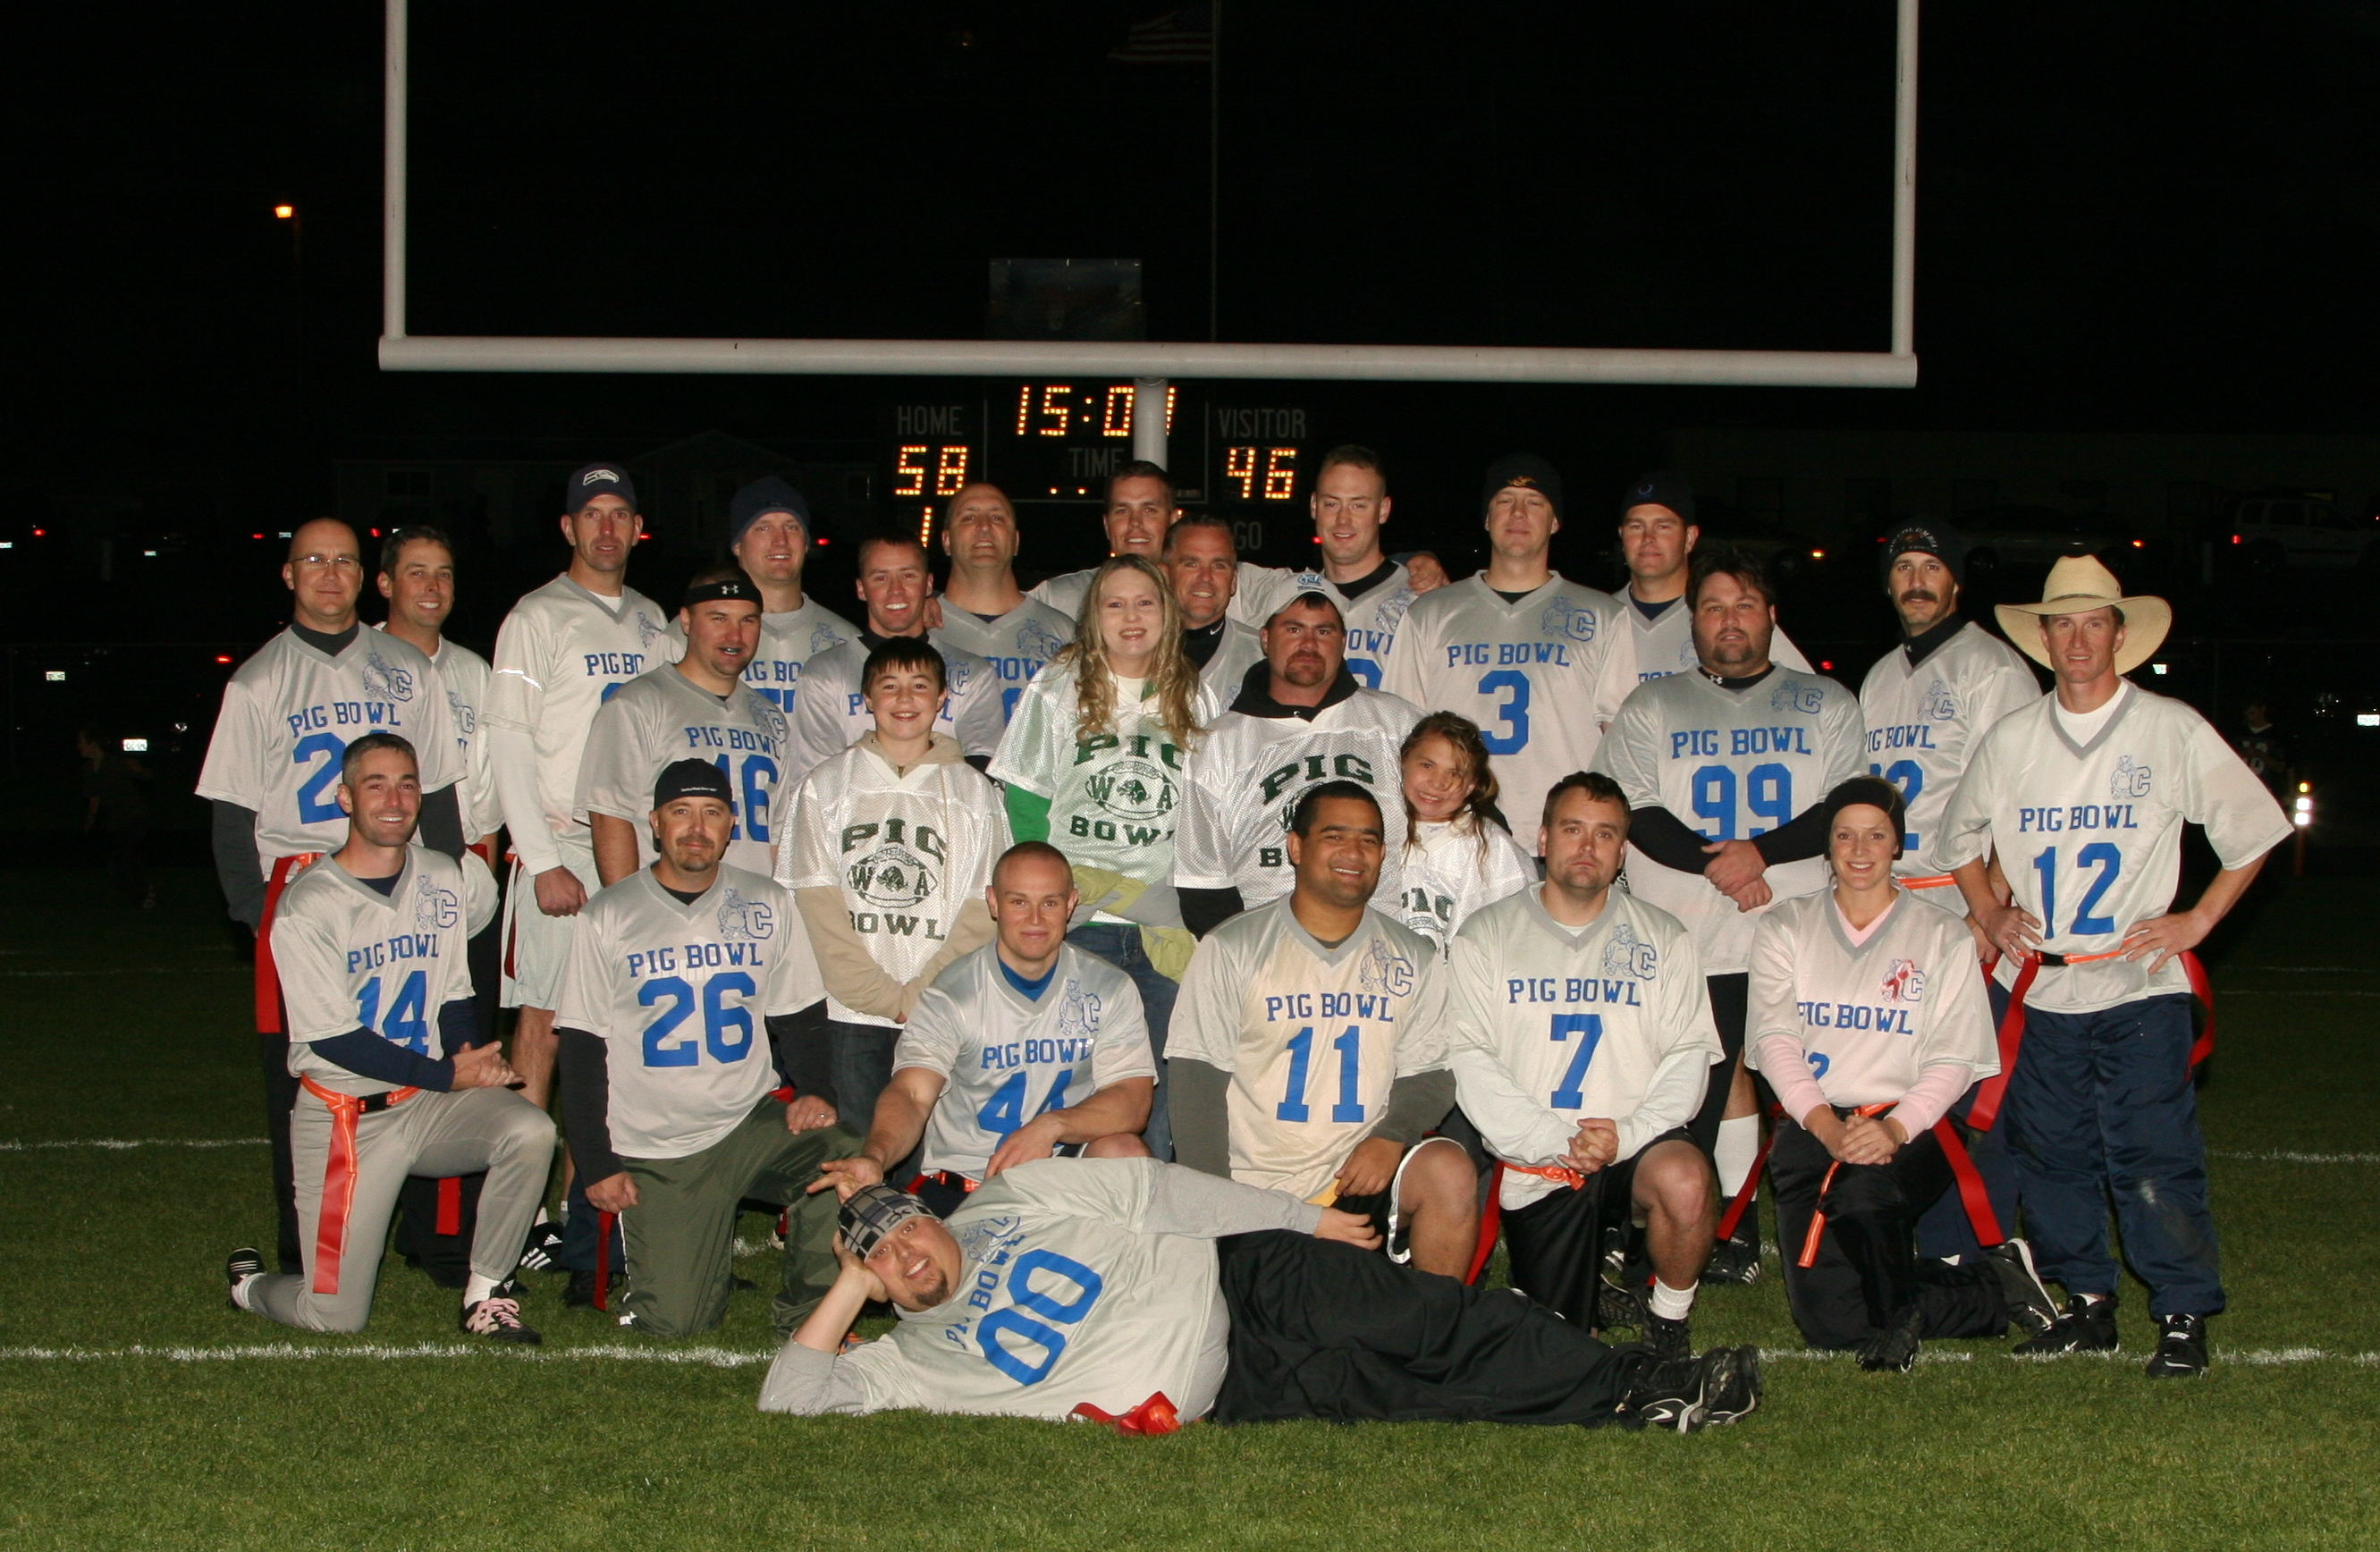 The scoreboard can be seen in this 2008 halftime photo of the Oregon Team with the Walter Family. The score was actually 458 to 246 at half!